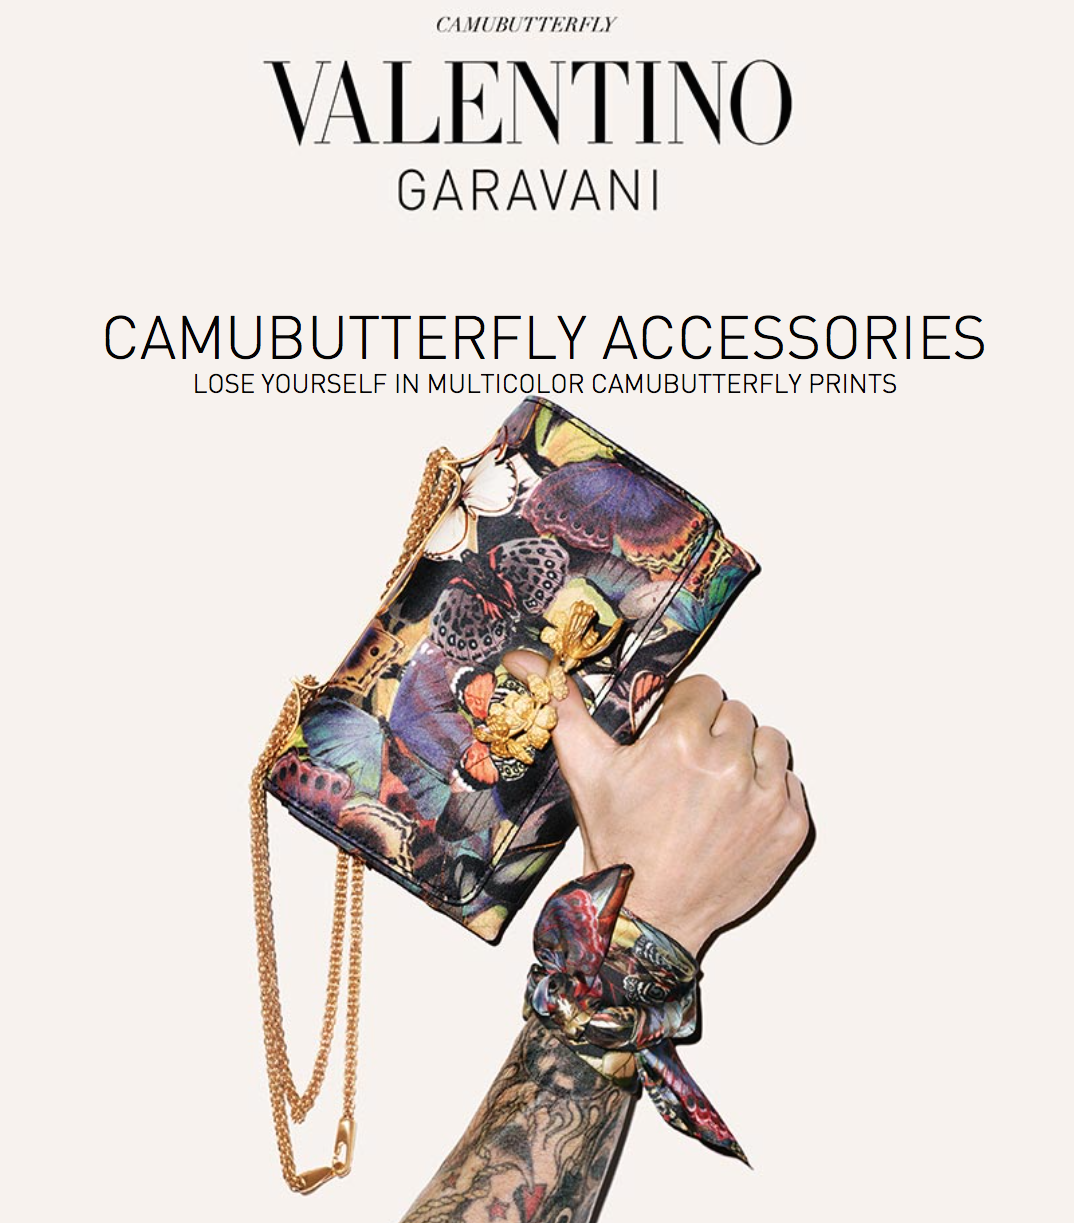 Valentino's CamuButterfly